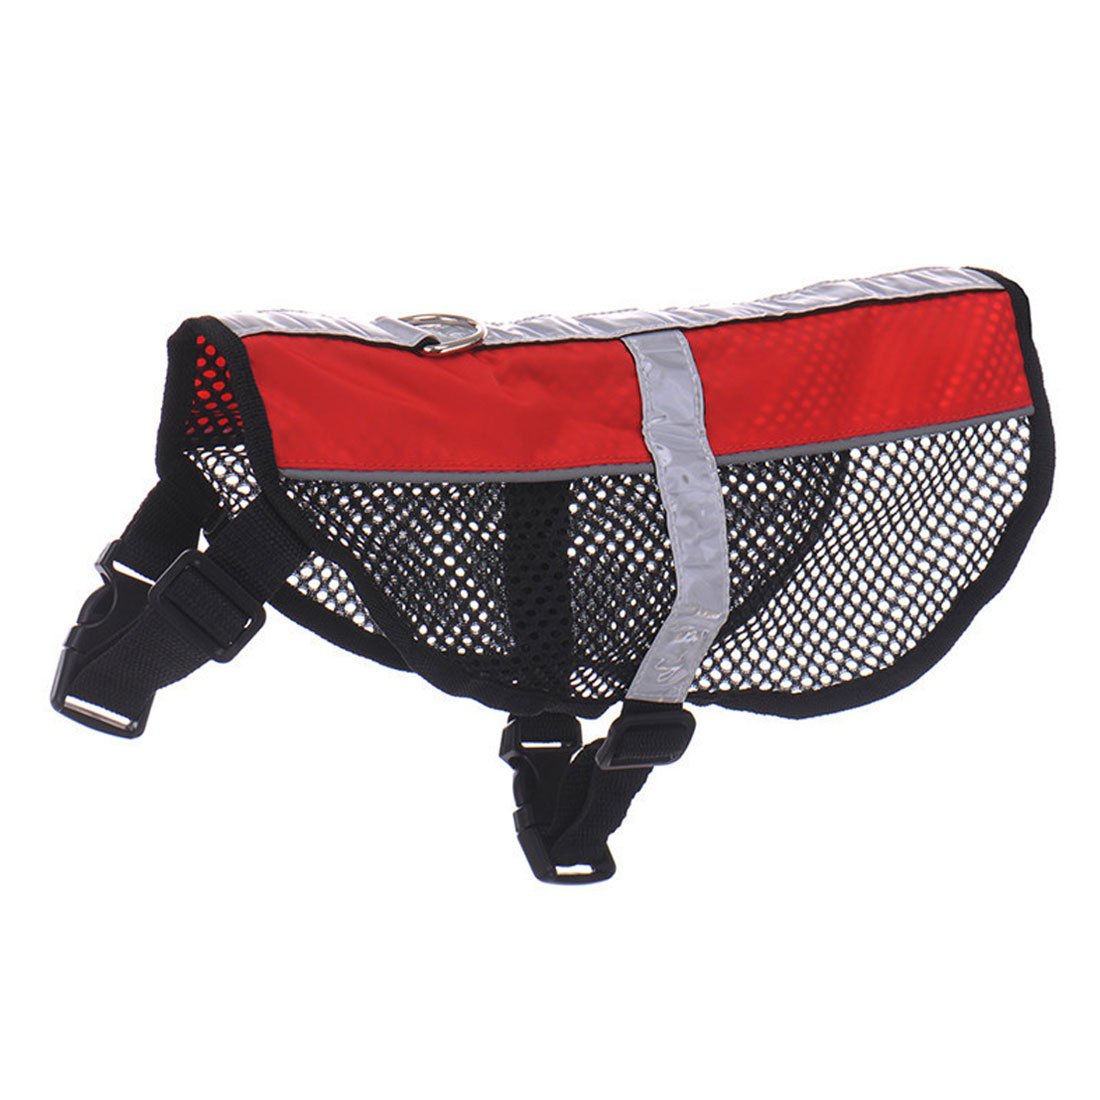 Nylon Service Dog Mesh Vest Harness Cool Comfort High Visibility Safety Jacket Red L